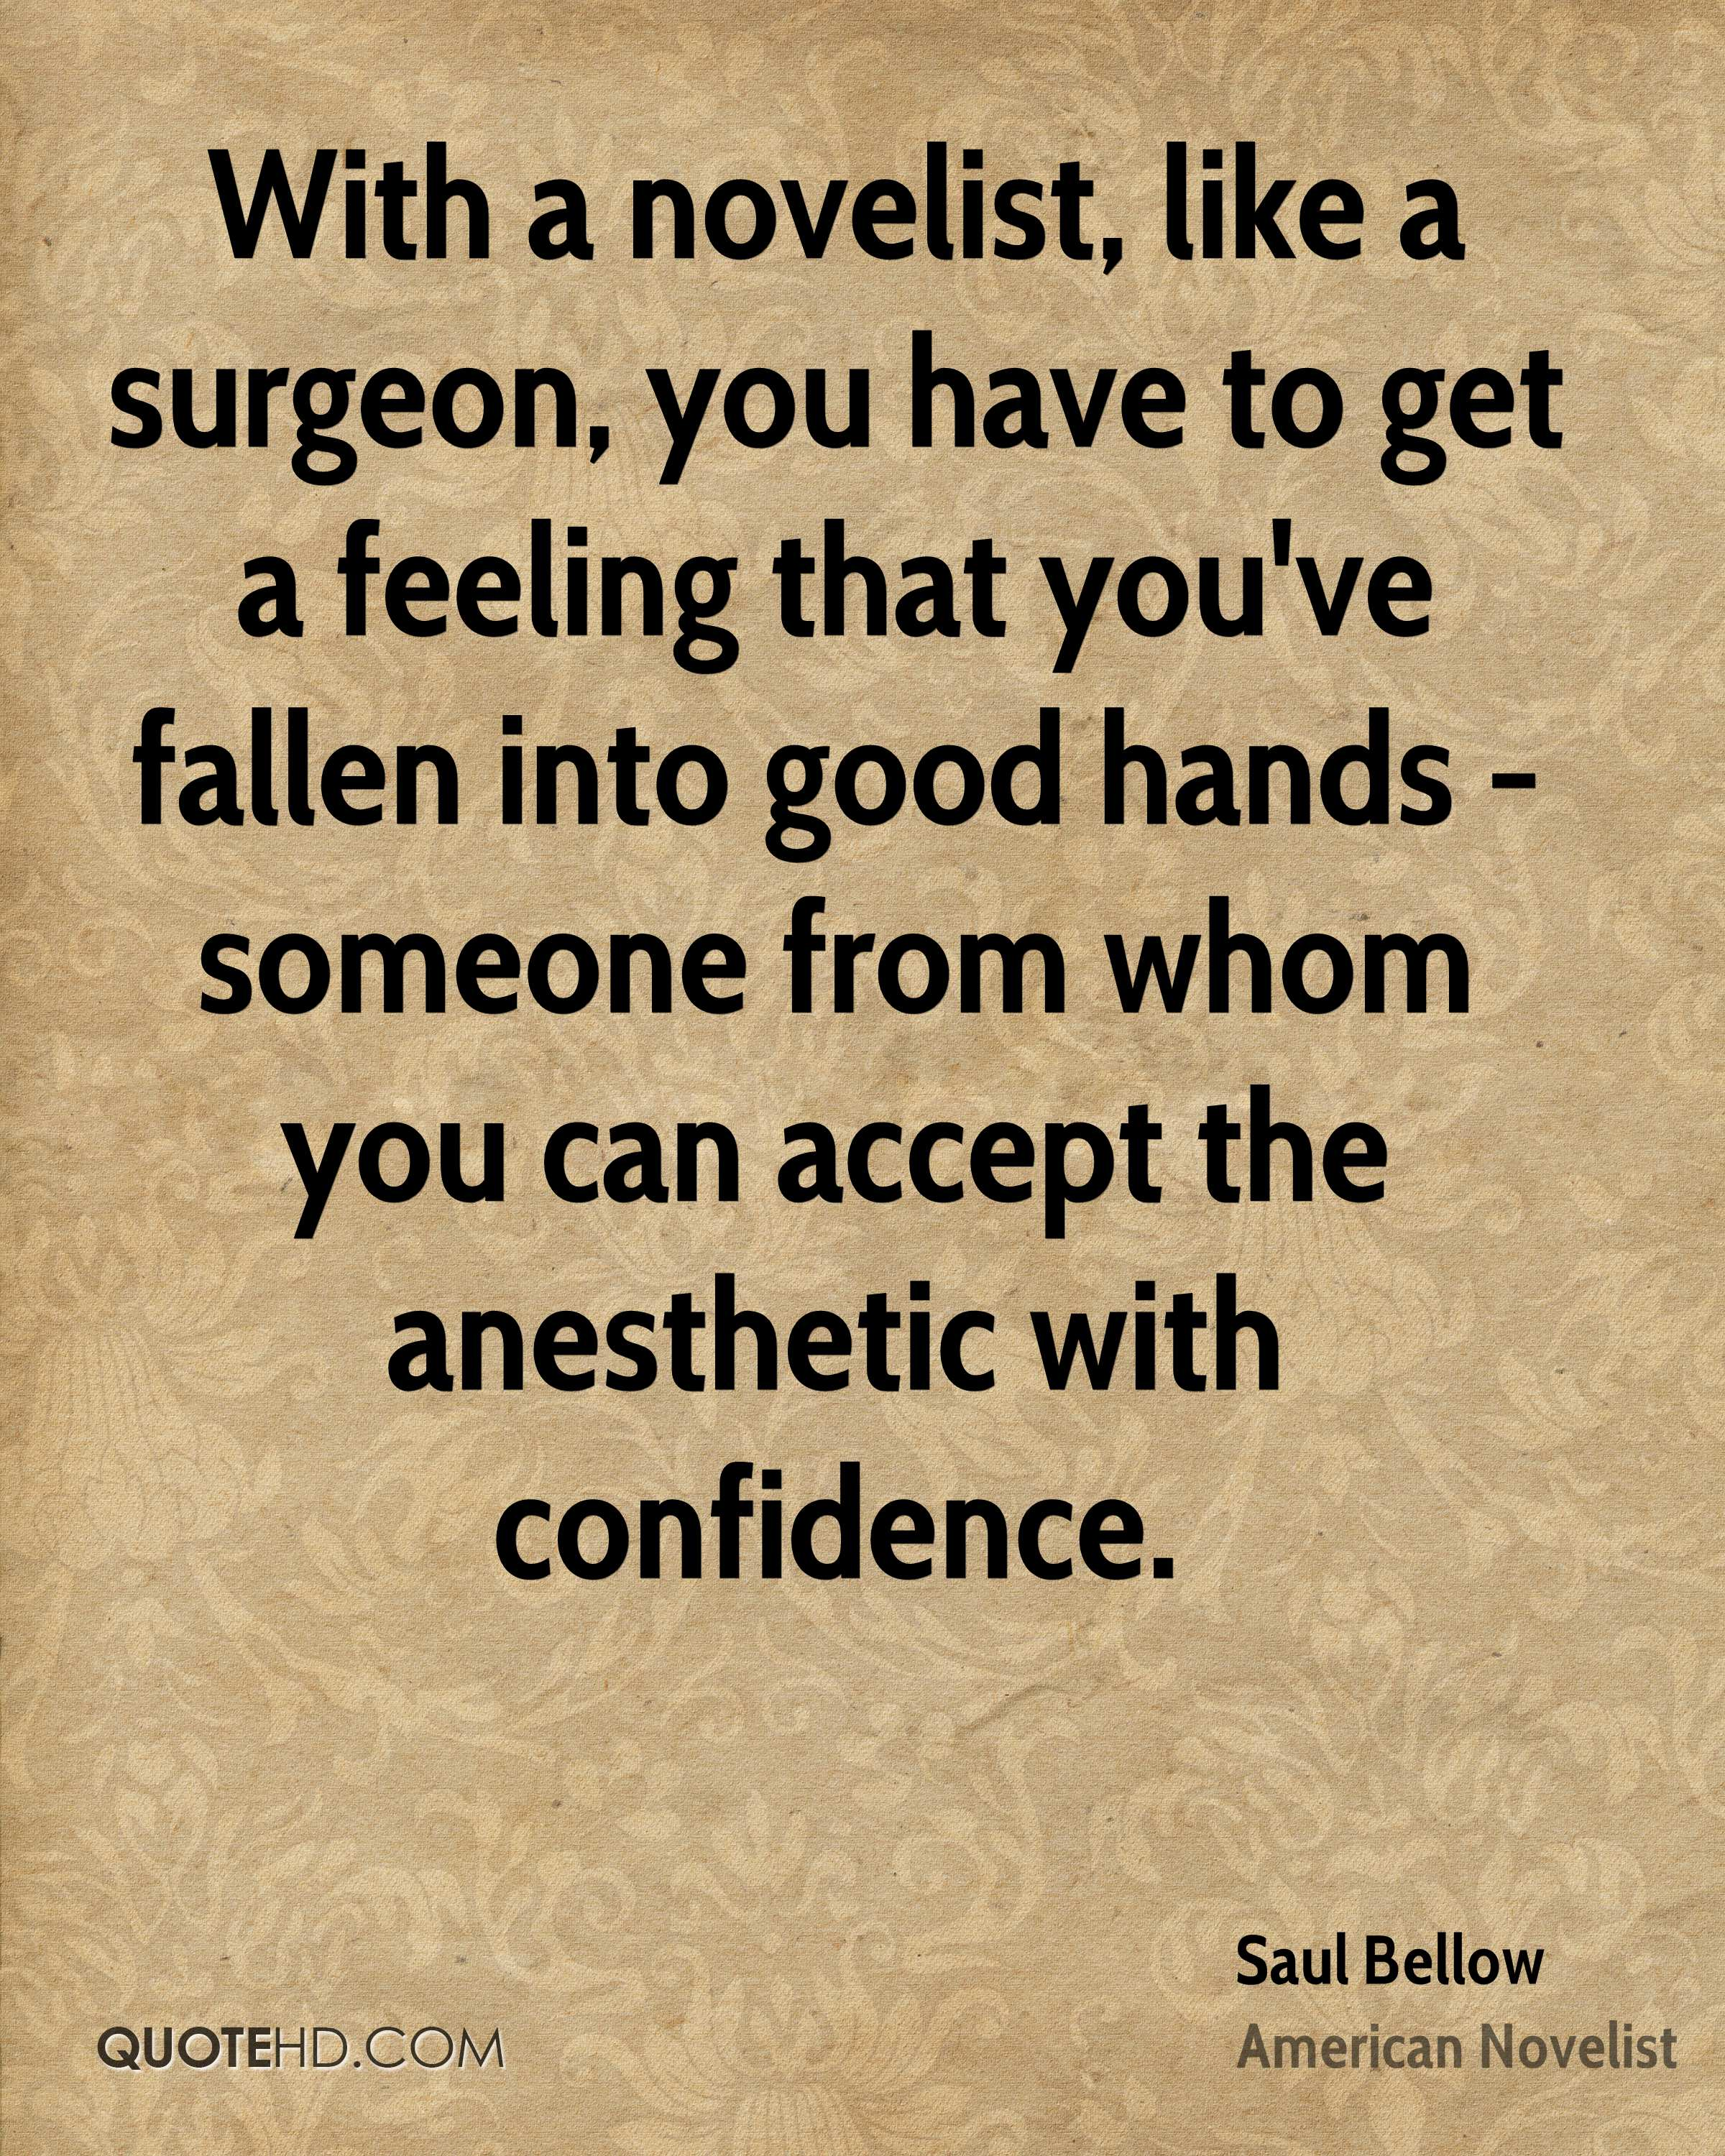 With a novelist, like a surgeon, you have to get a feeling that you've fallen into good hands - someone from whom you can accept the anesthetic with confidence.